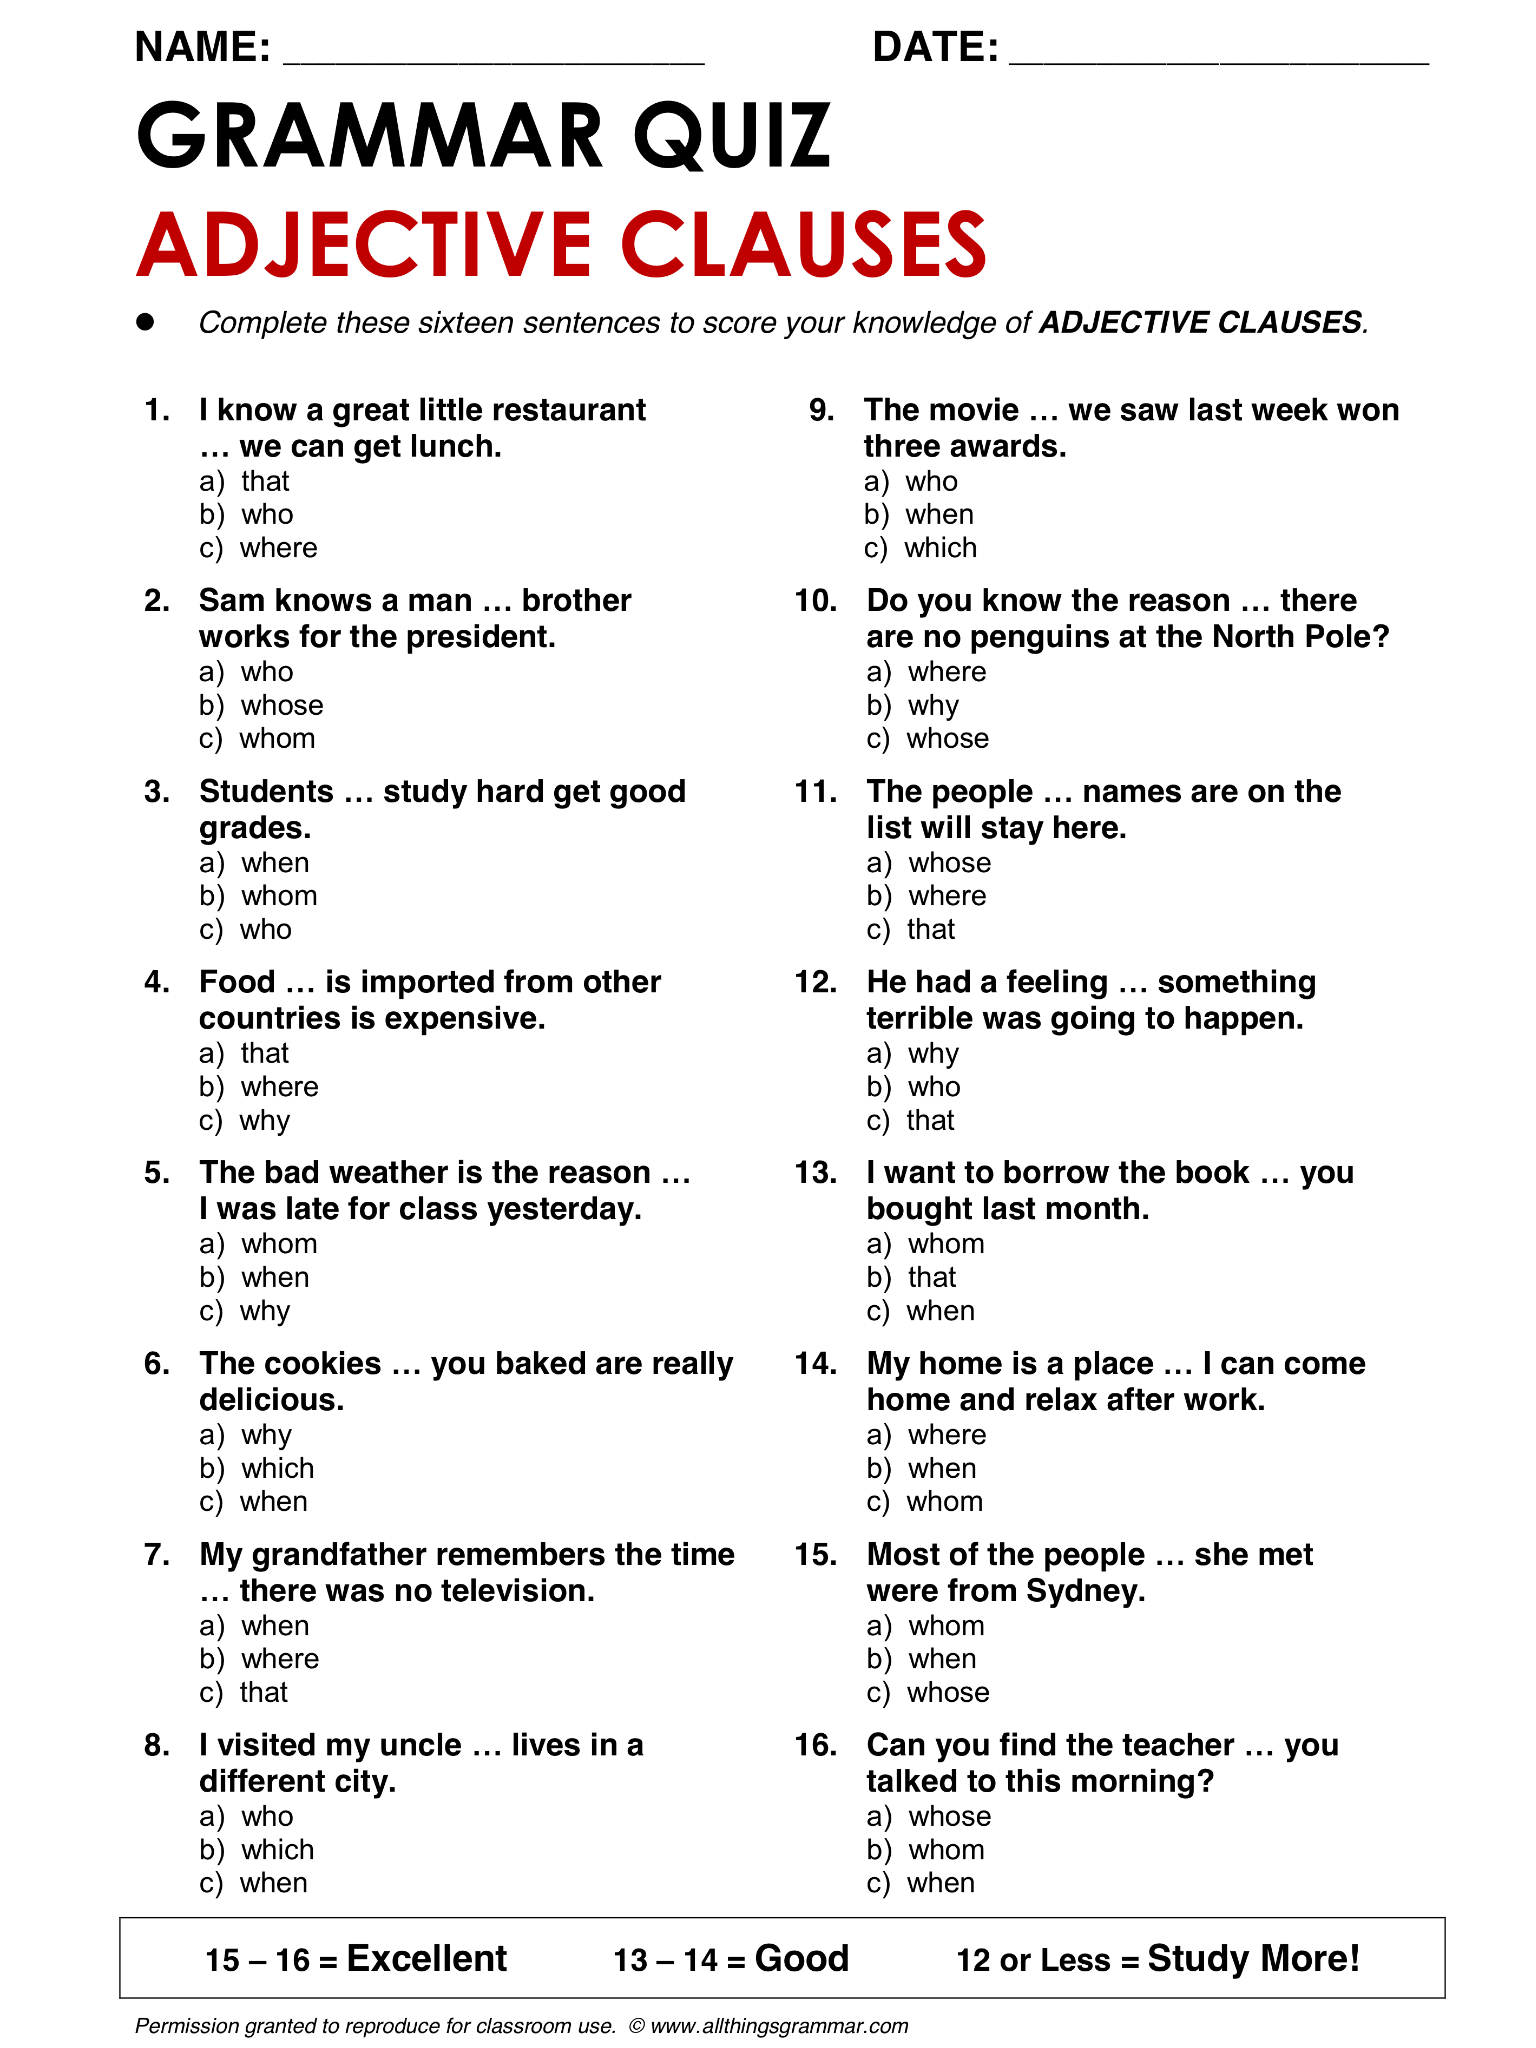 English Grammar Adjective Clauses Lthingsgrammar